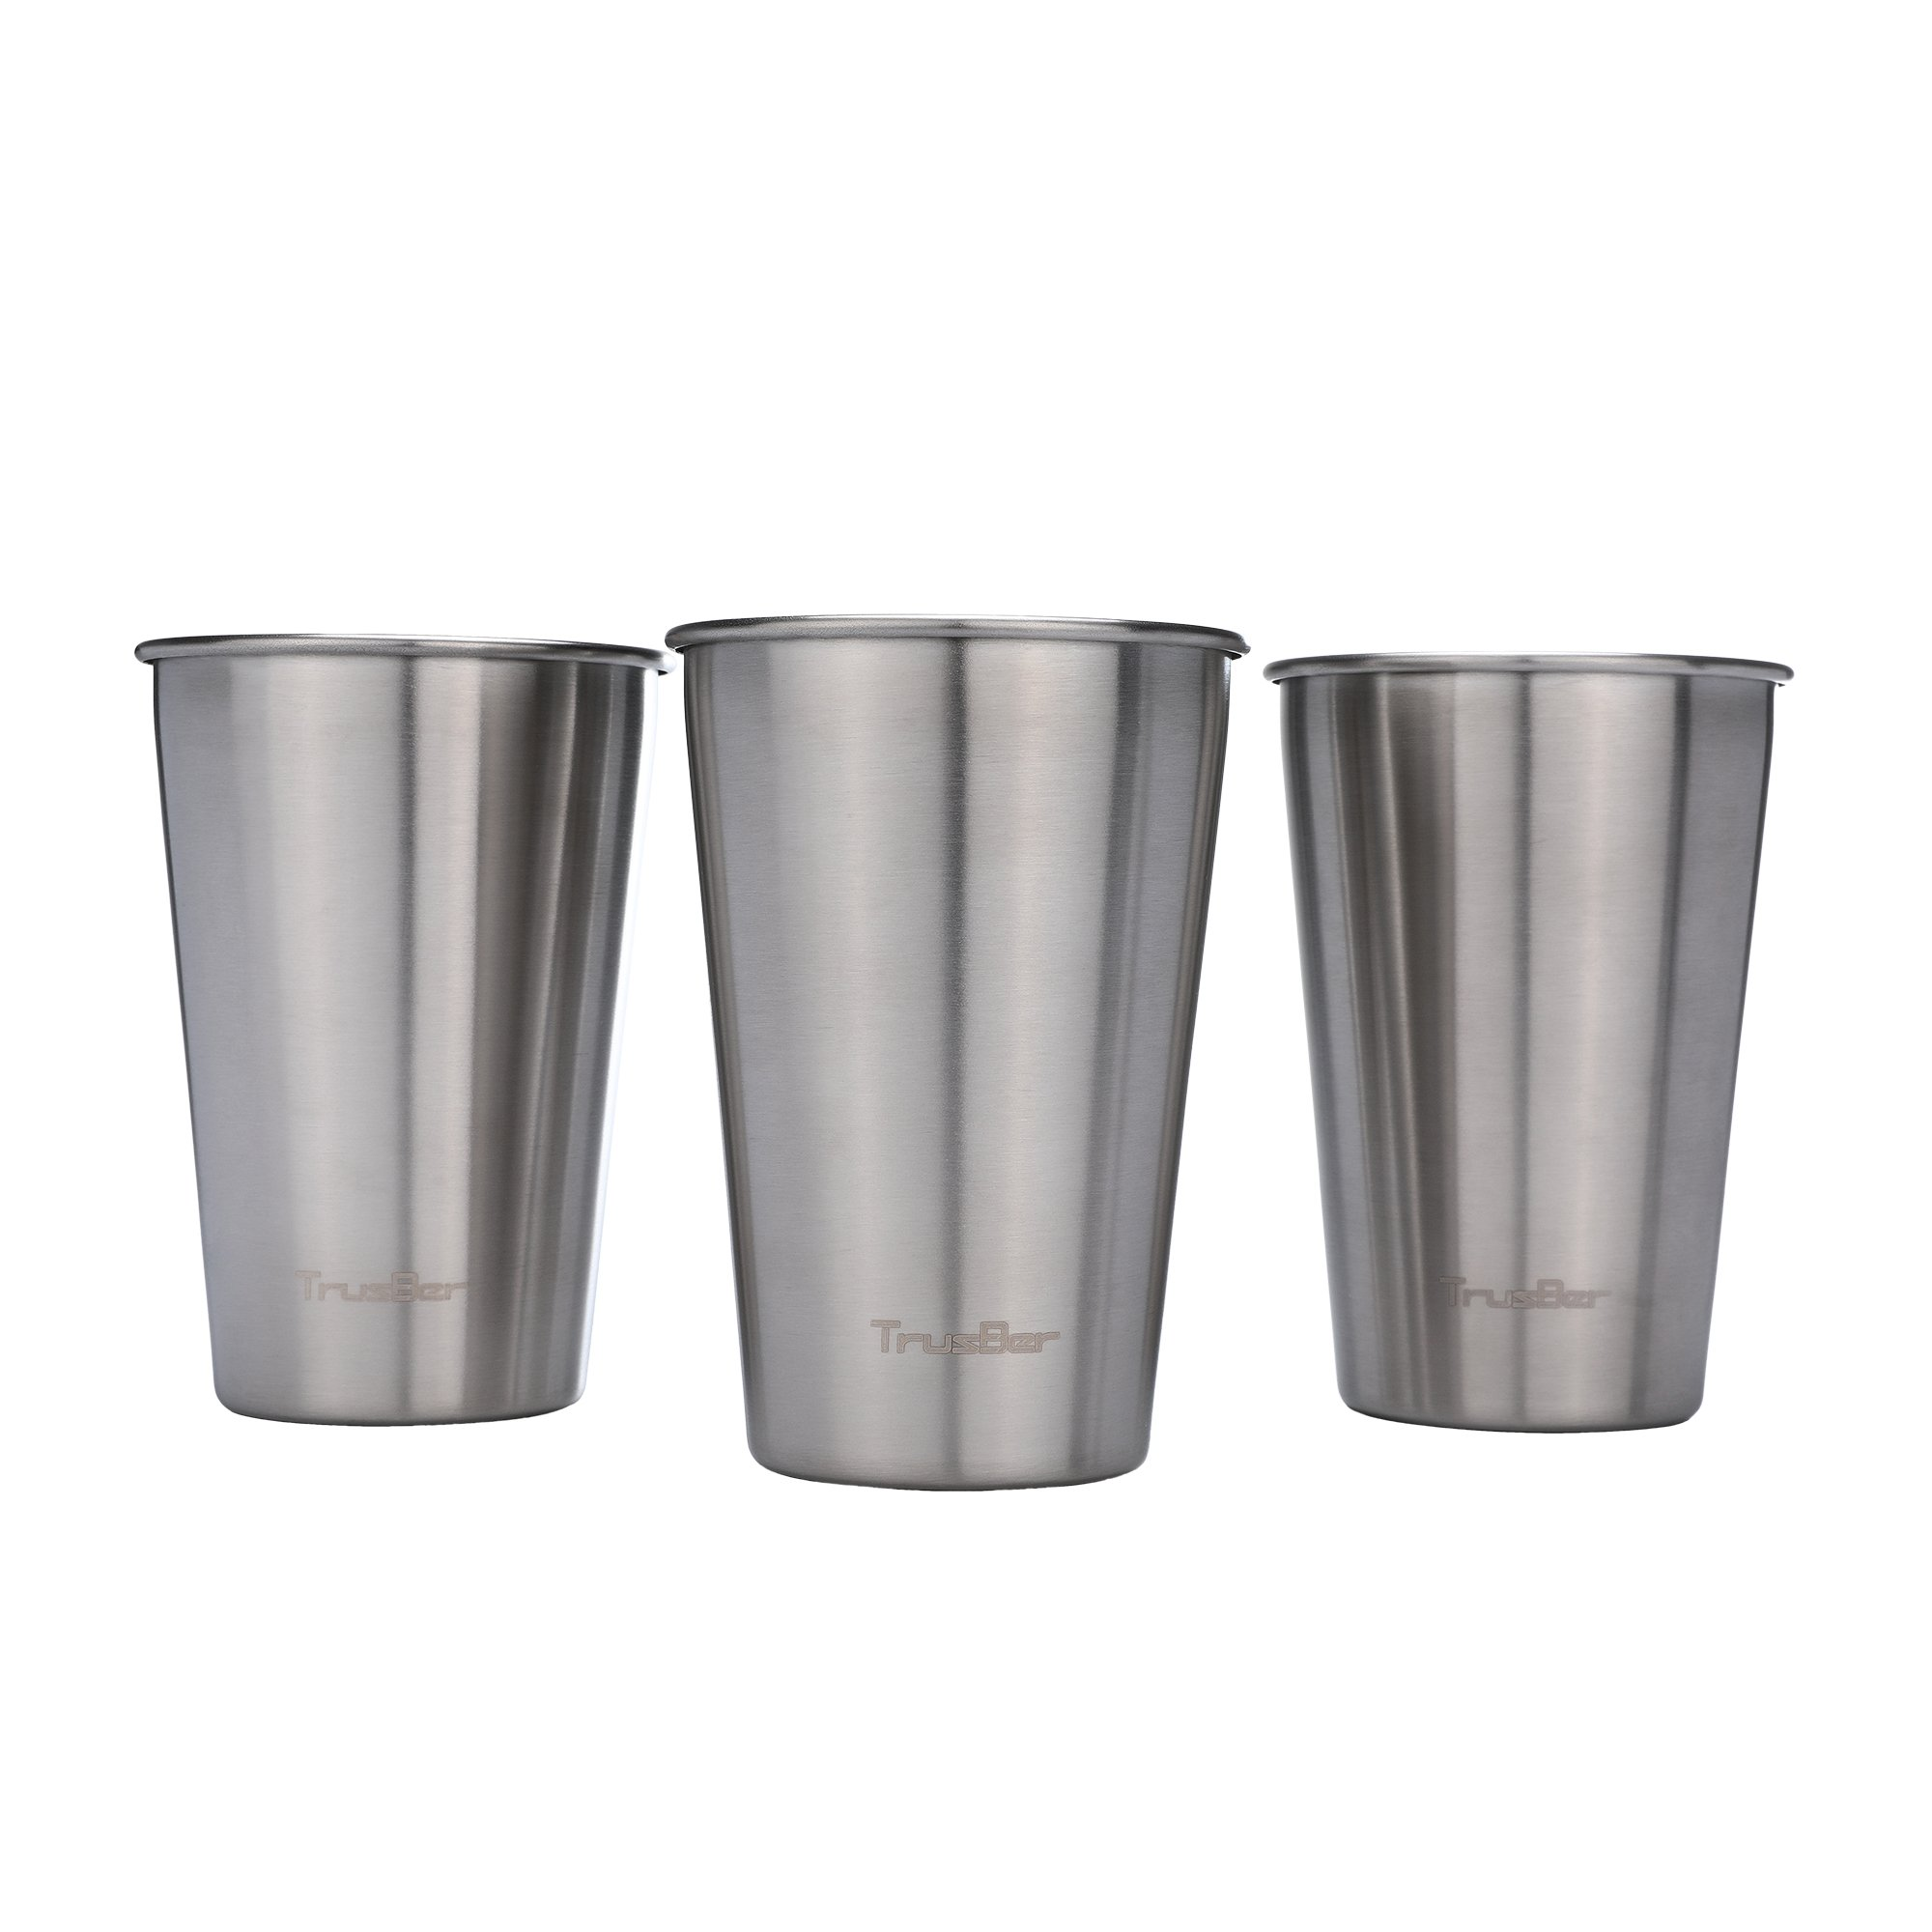 TRUSBER Stainless Steel Cups (3 Pack), 16 Oz Metal Drinking Tumblers - 18/8 Food Grade Steel, BPA Free, Stackable & Unbreakable - Great for Indoor, Outdoor - Adults & Kids Friendly